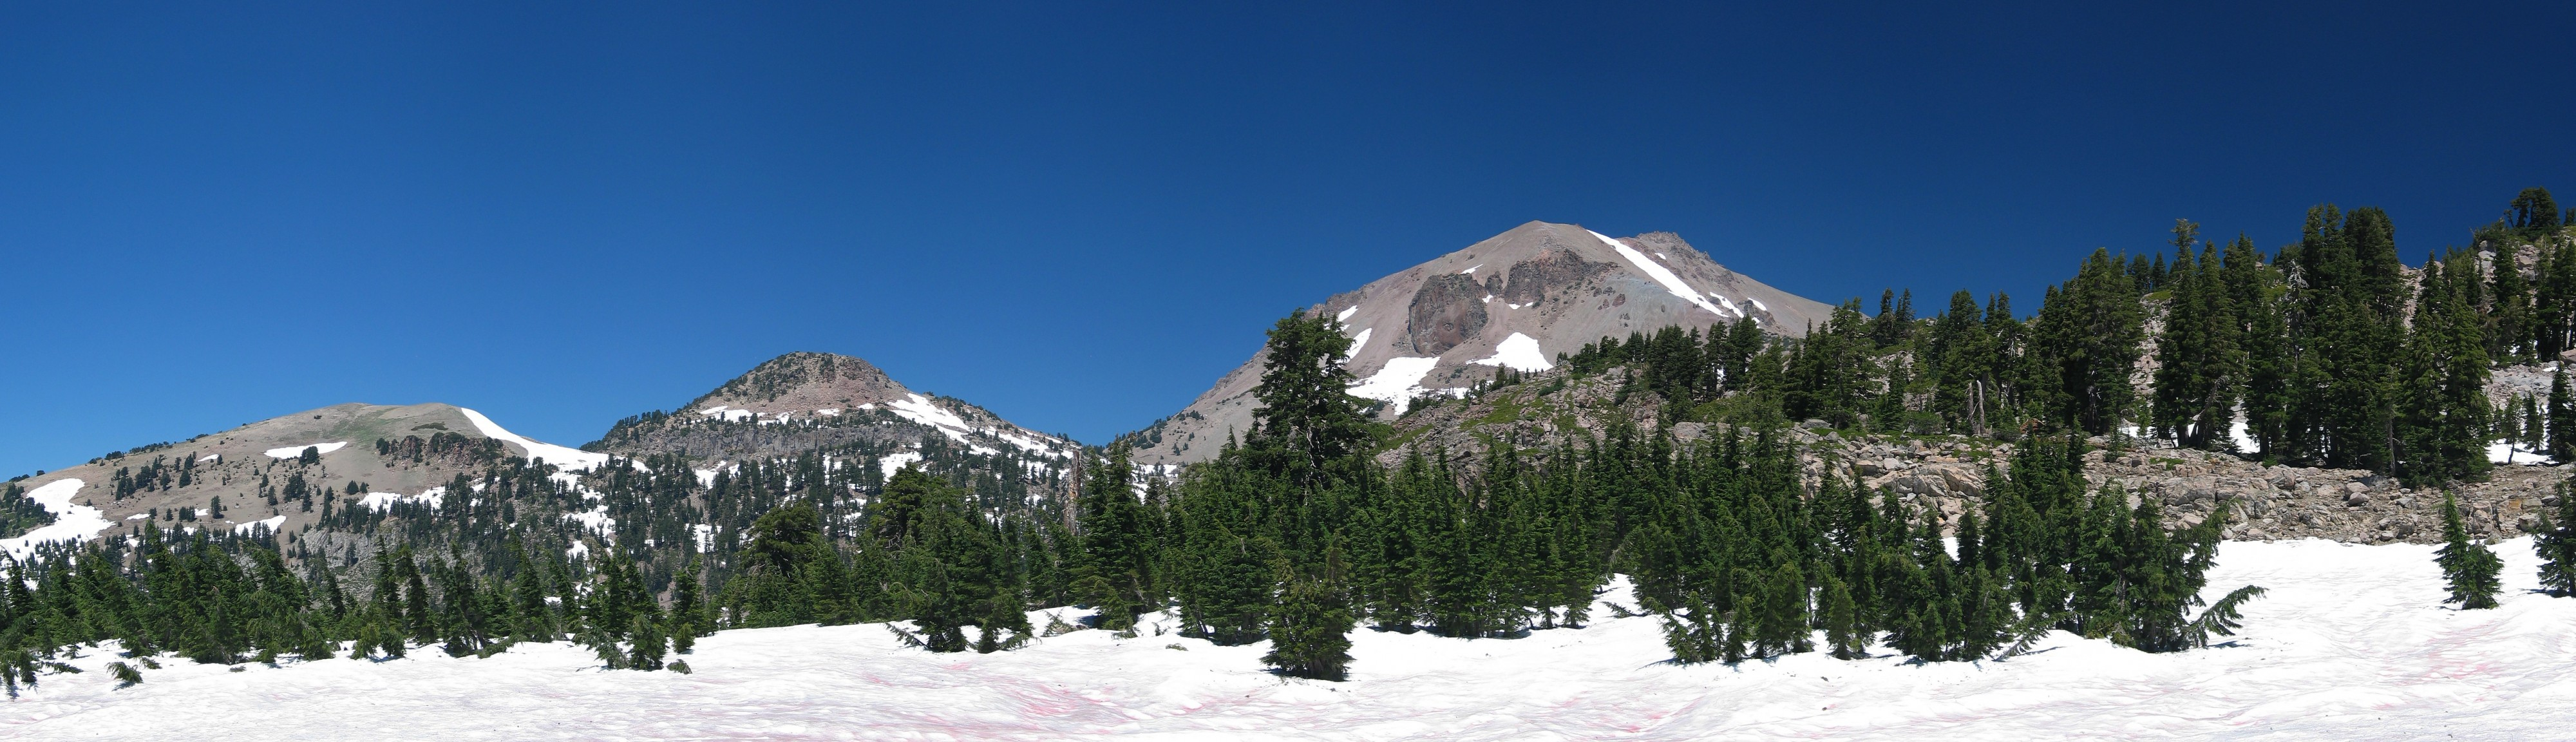 USA Lassen NP algae snow meadow CA